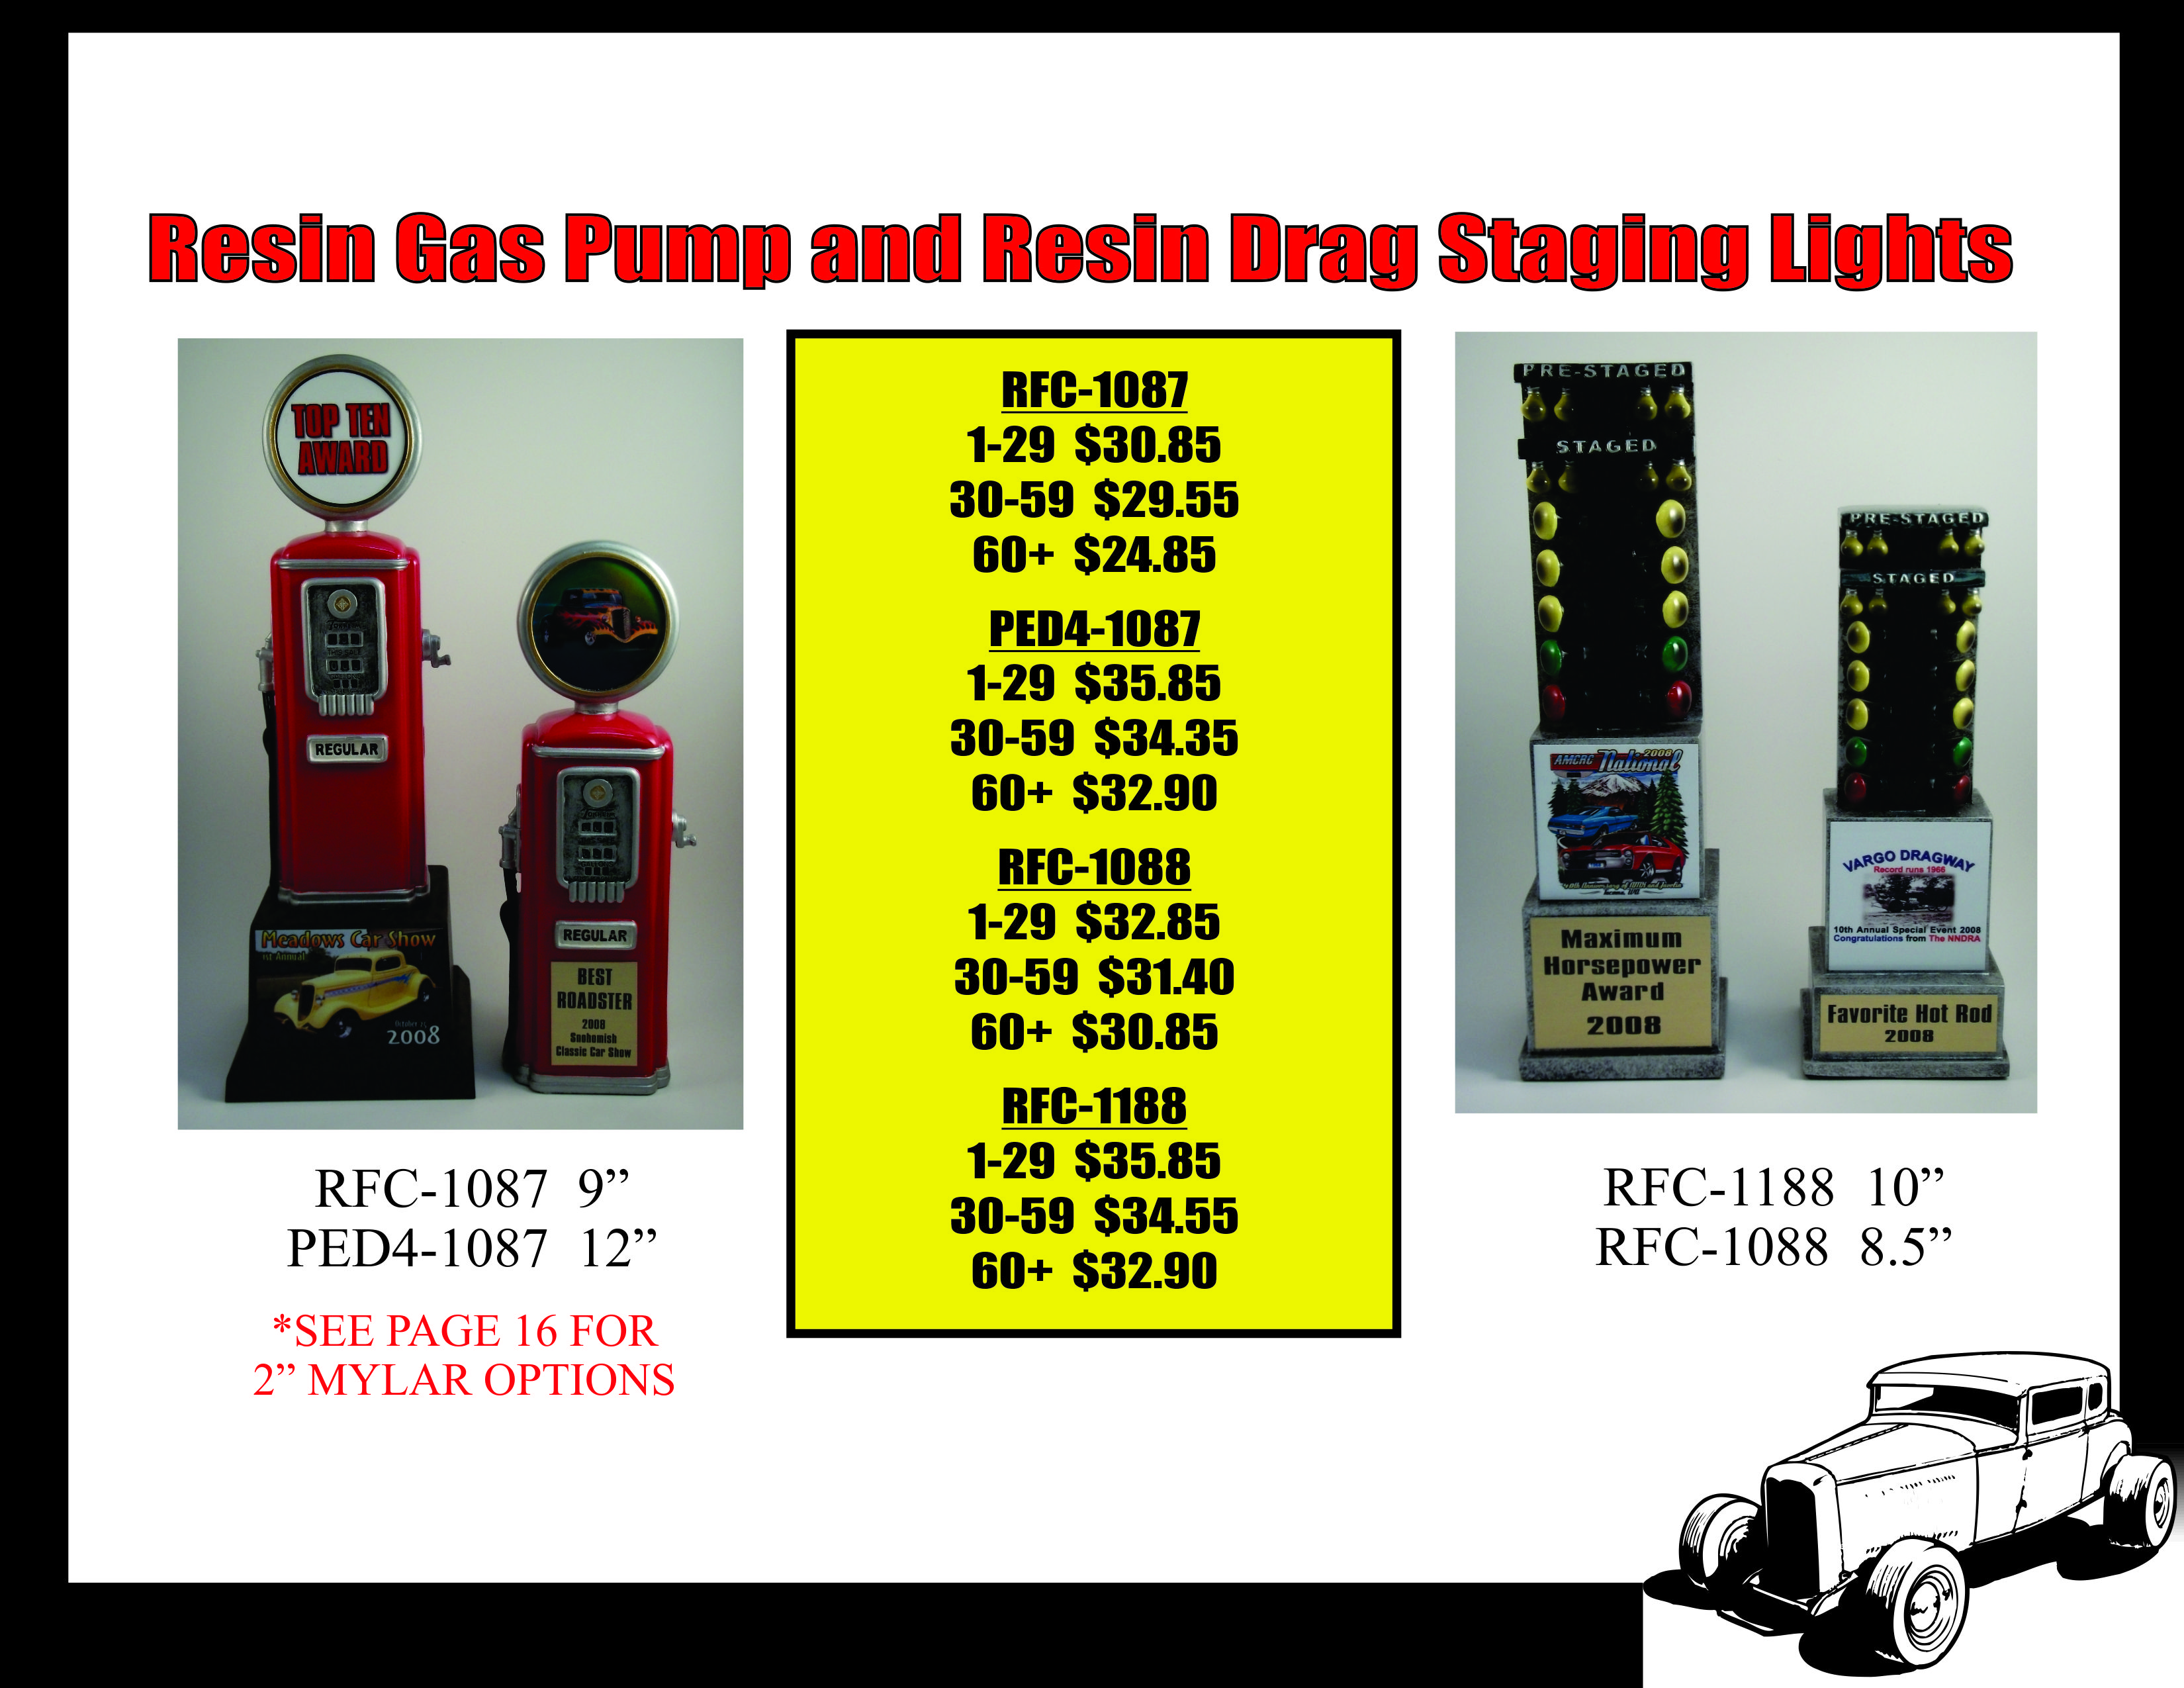 Gas Pump and Staging Lights 2015